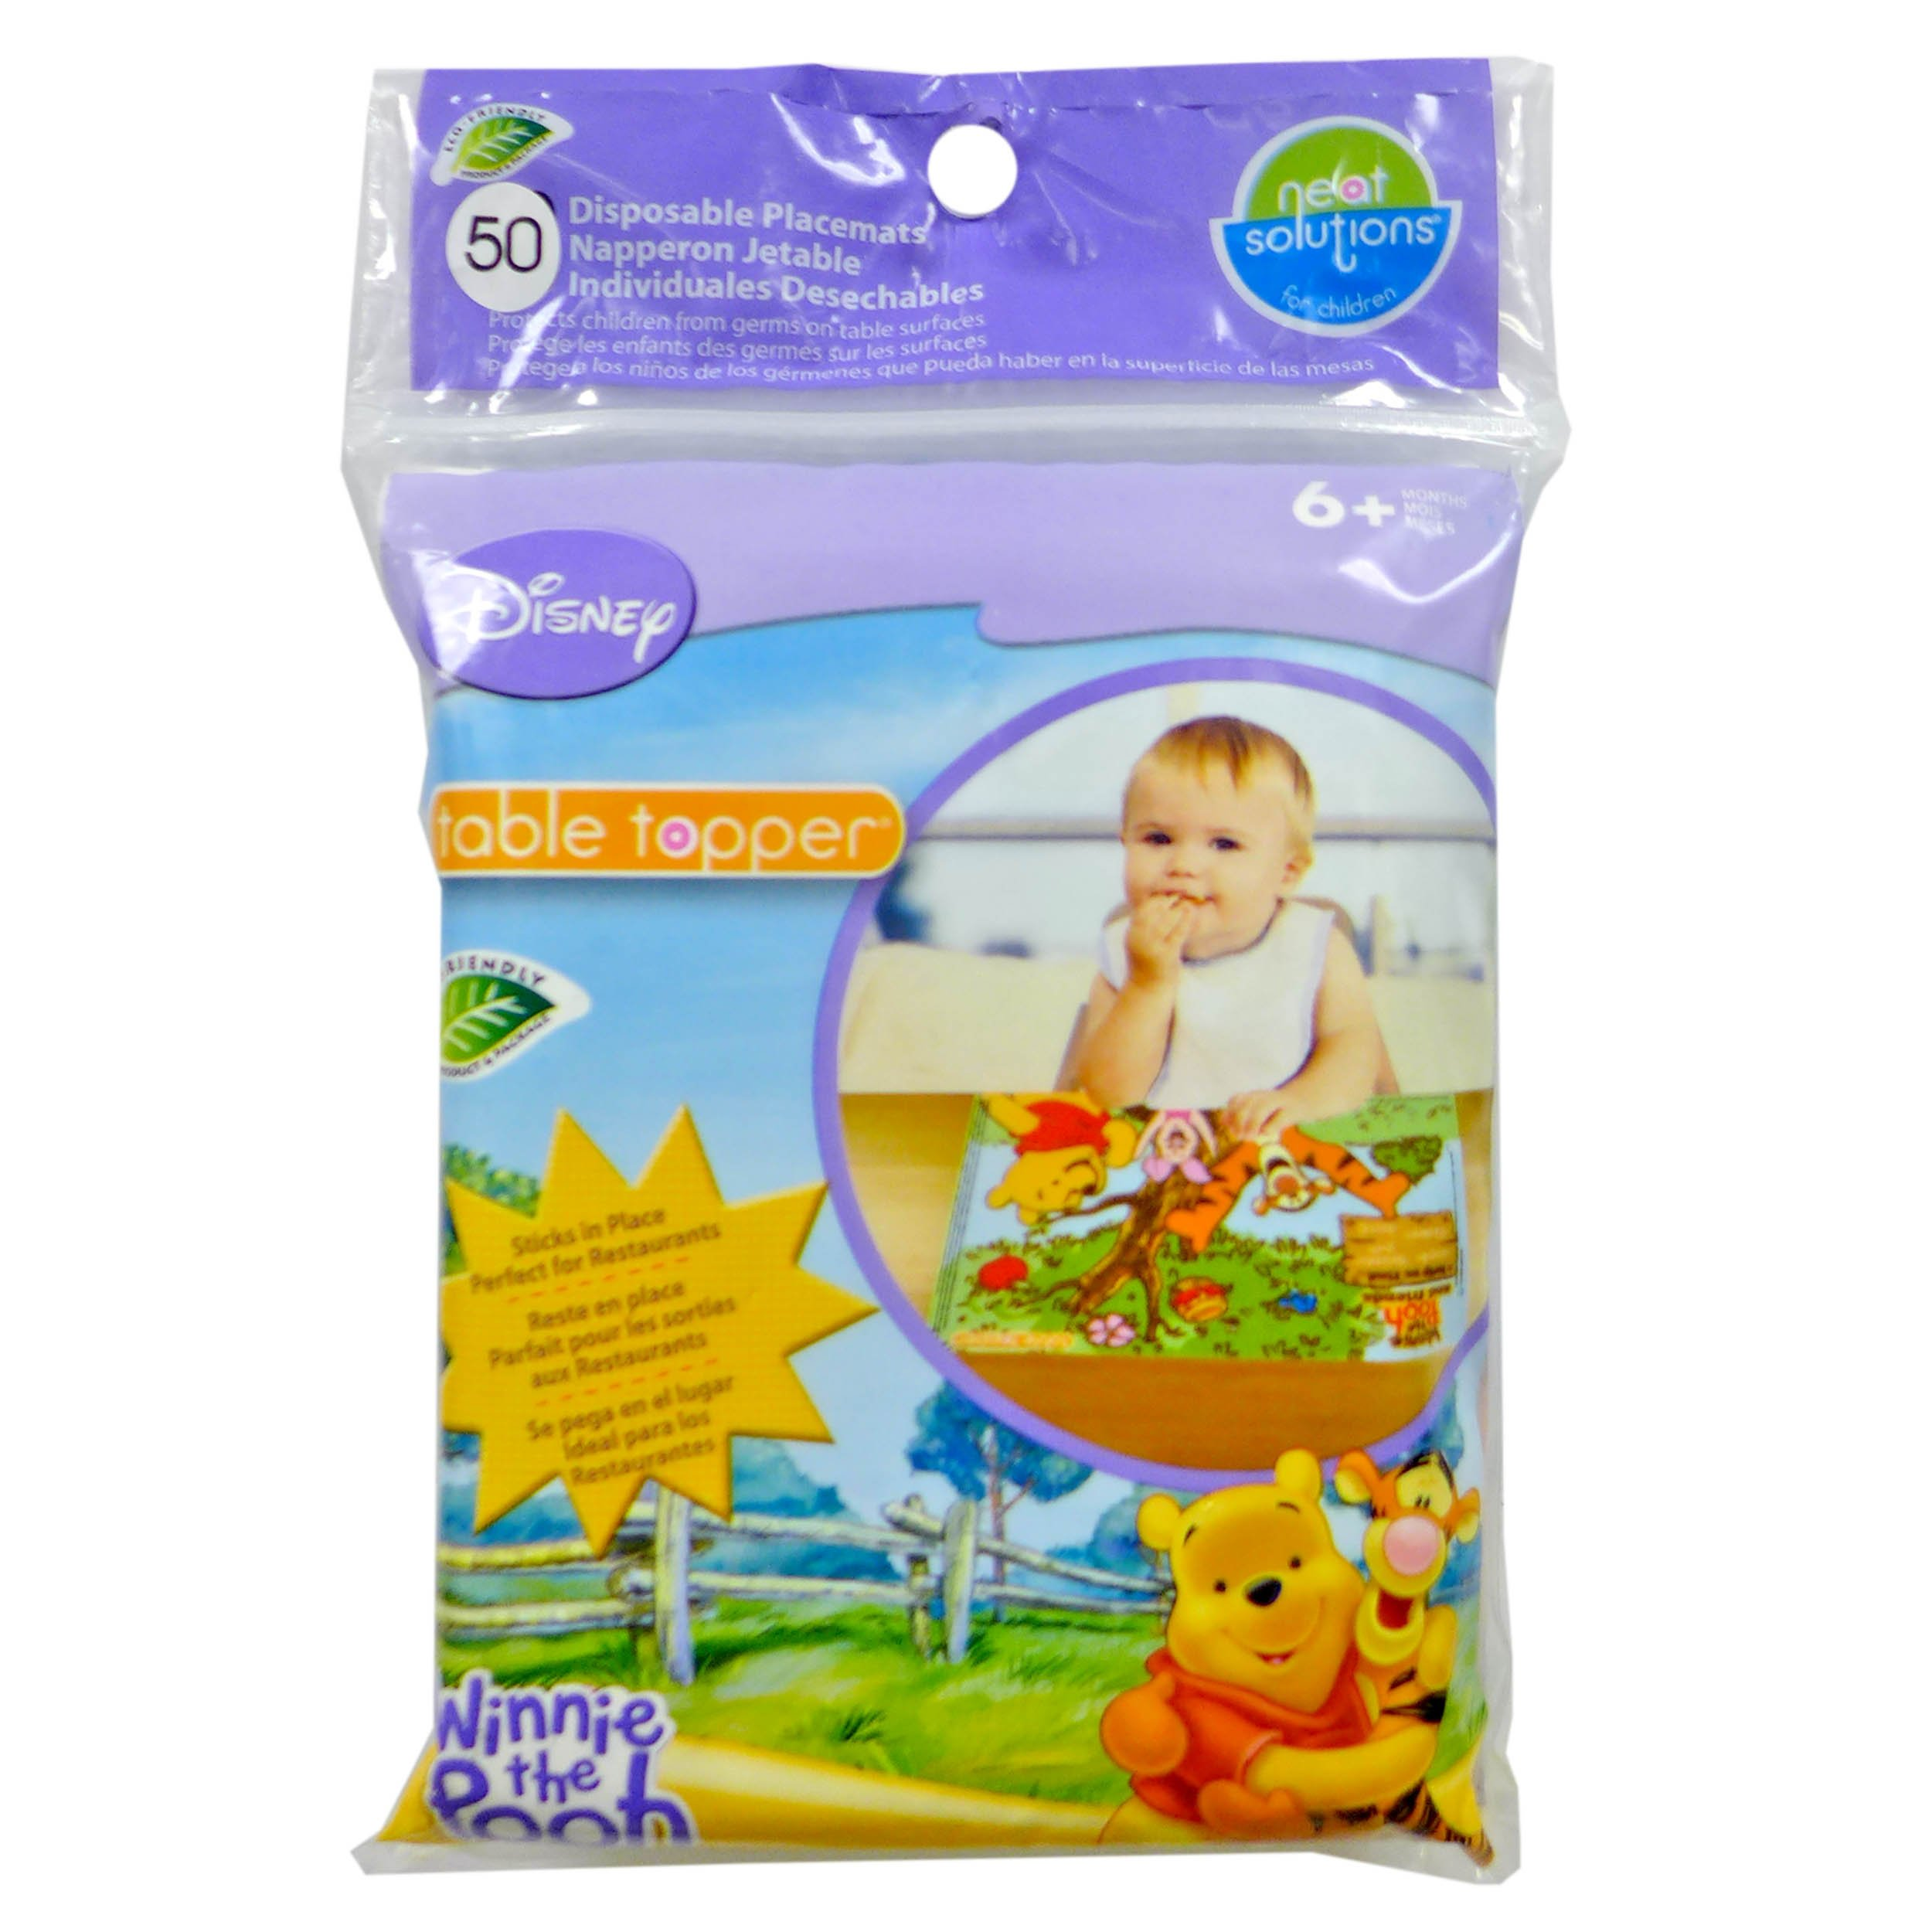 Disney Winnie The Pooh Table Topper Disposable Stick-on Placements in Reusable Package, Gender Neutral Design by Disney